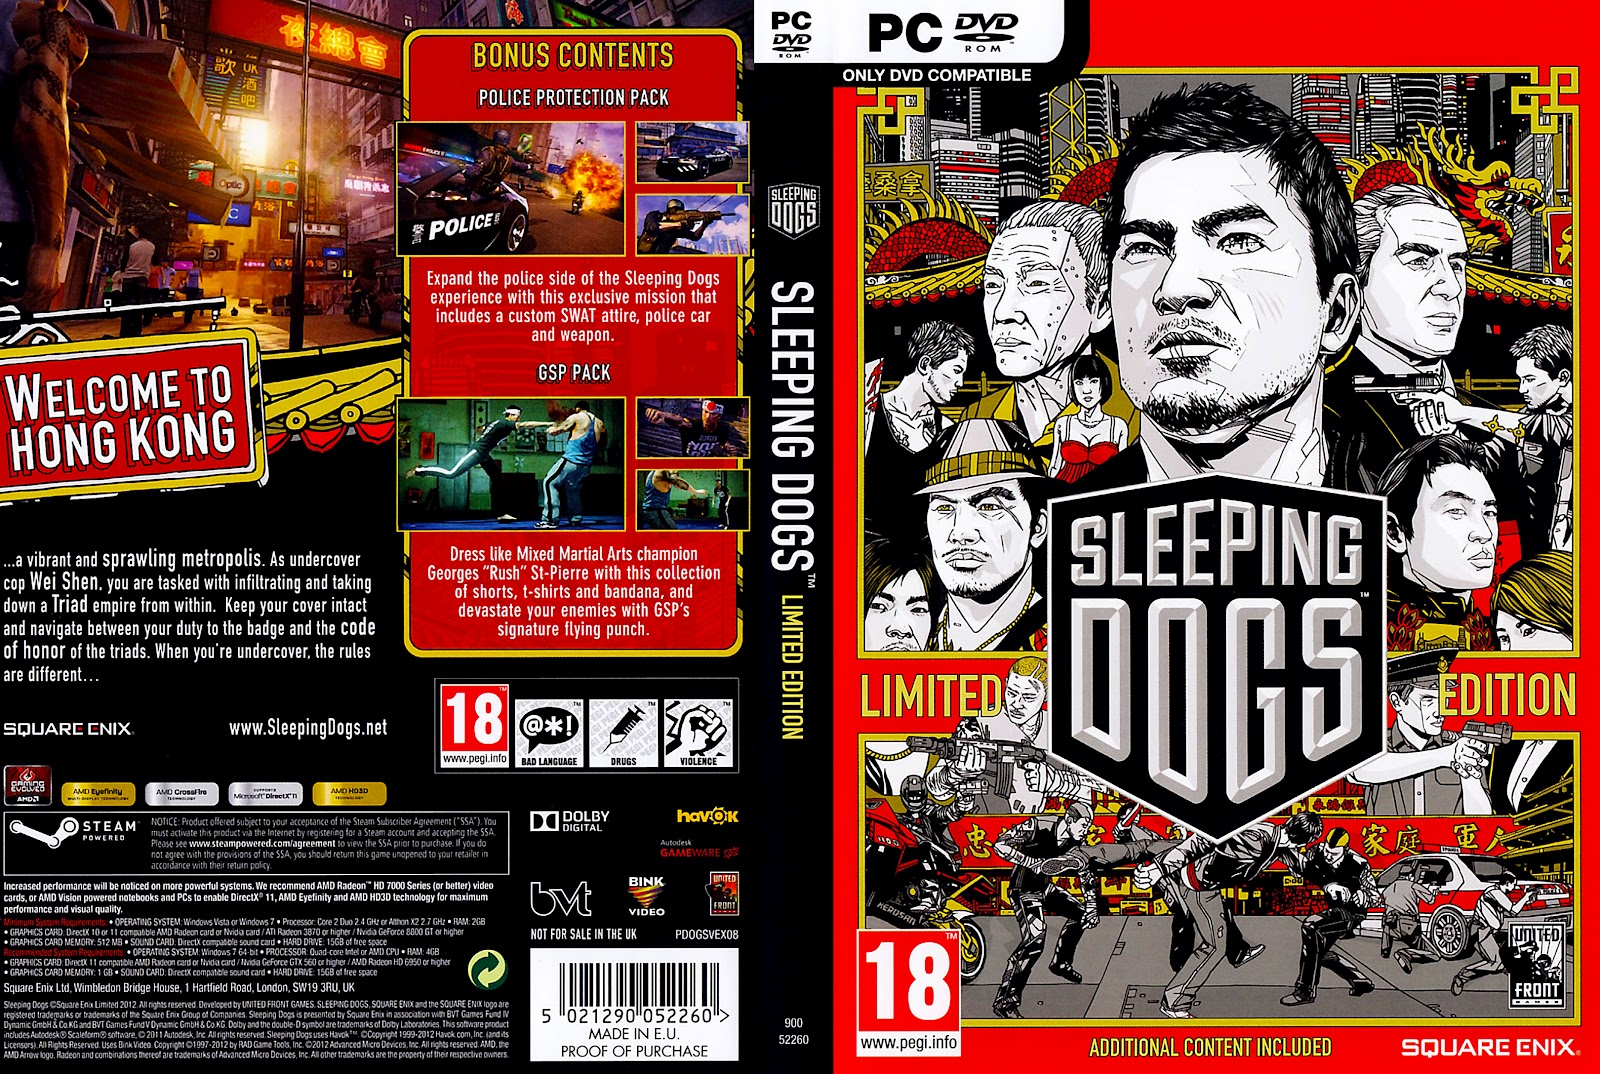 sleeping dogs limited edition crack